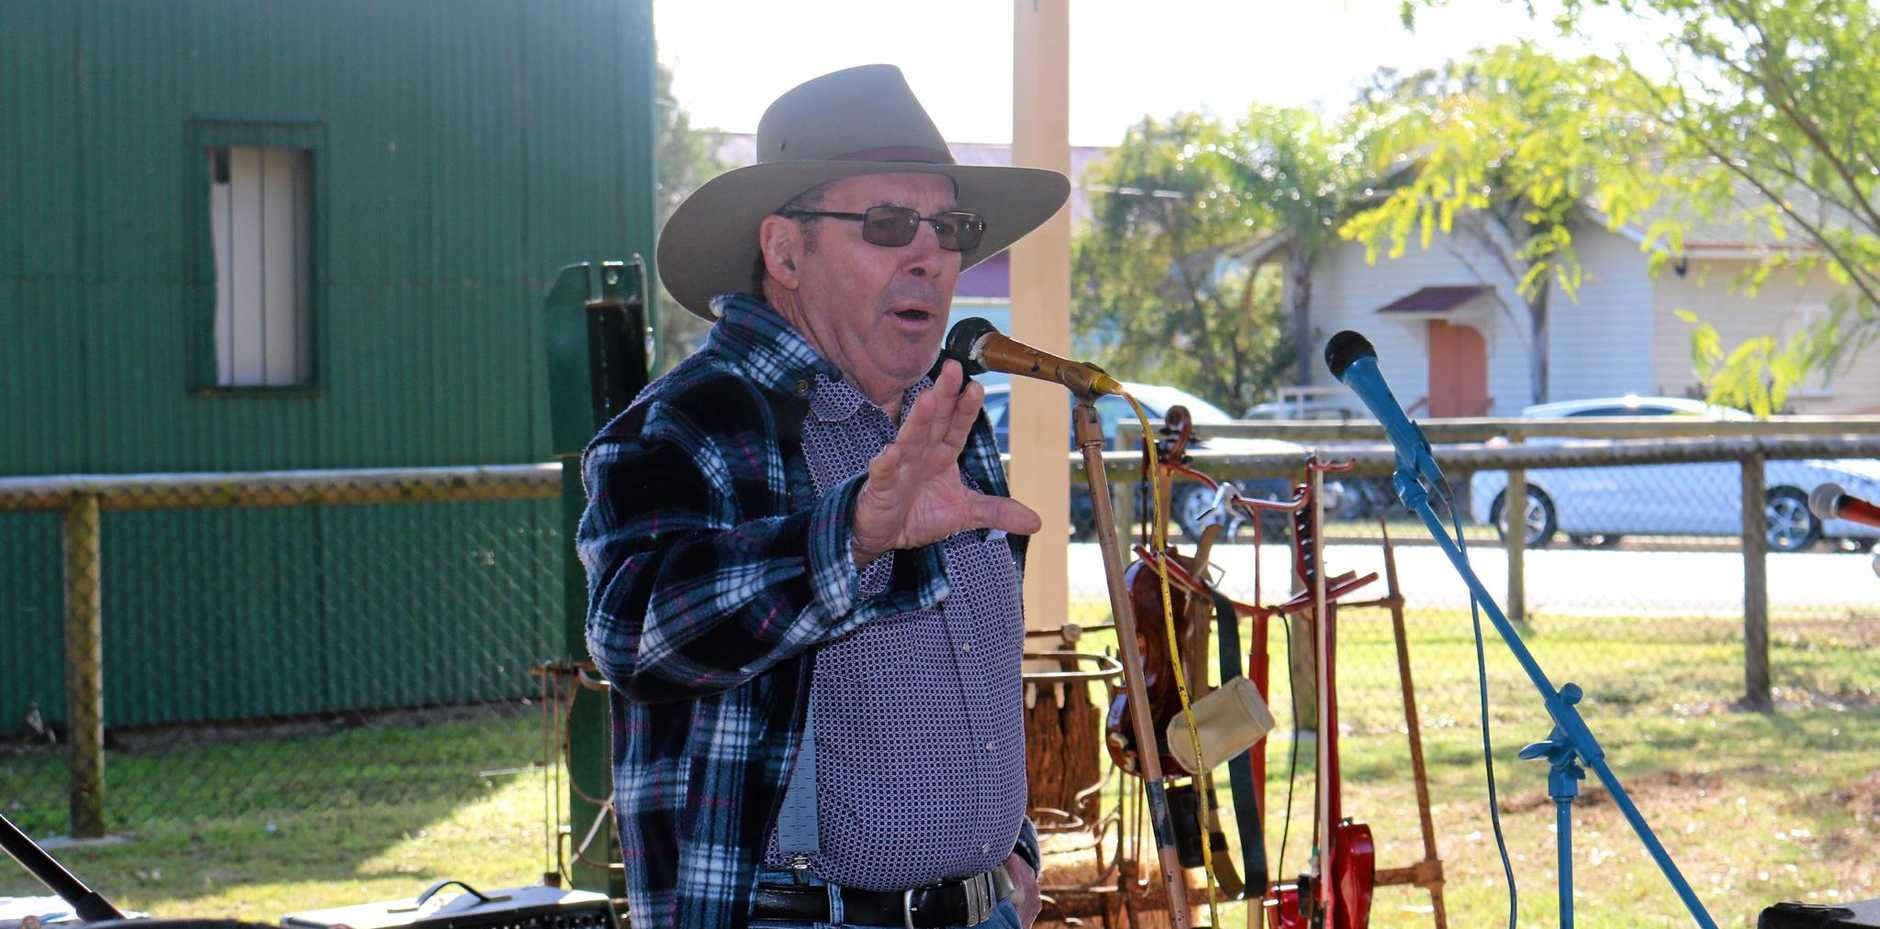 Tony Caswell shares his poem during the annual Poets in the Park breakfast at Marburg on Saturday, August 13.